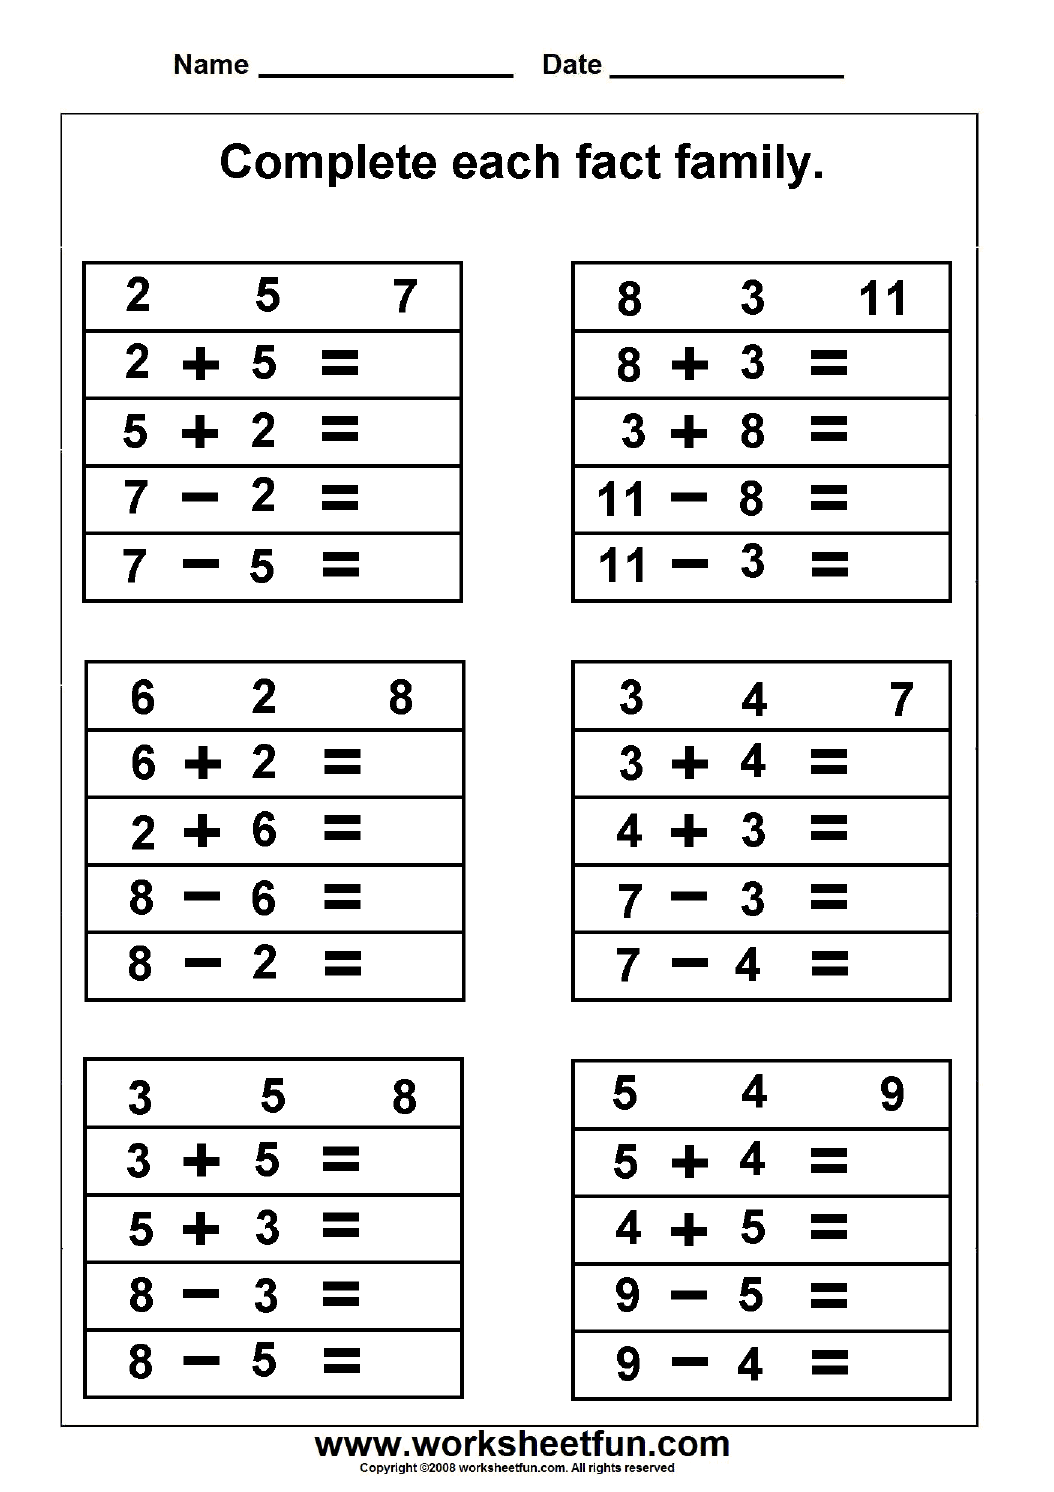 Fact Family – Complete Each Fact Family – 2 Worksheets   Free